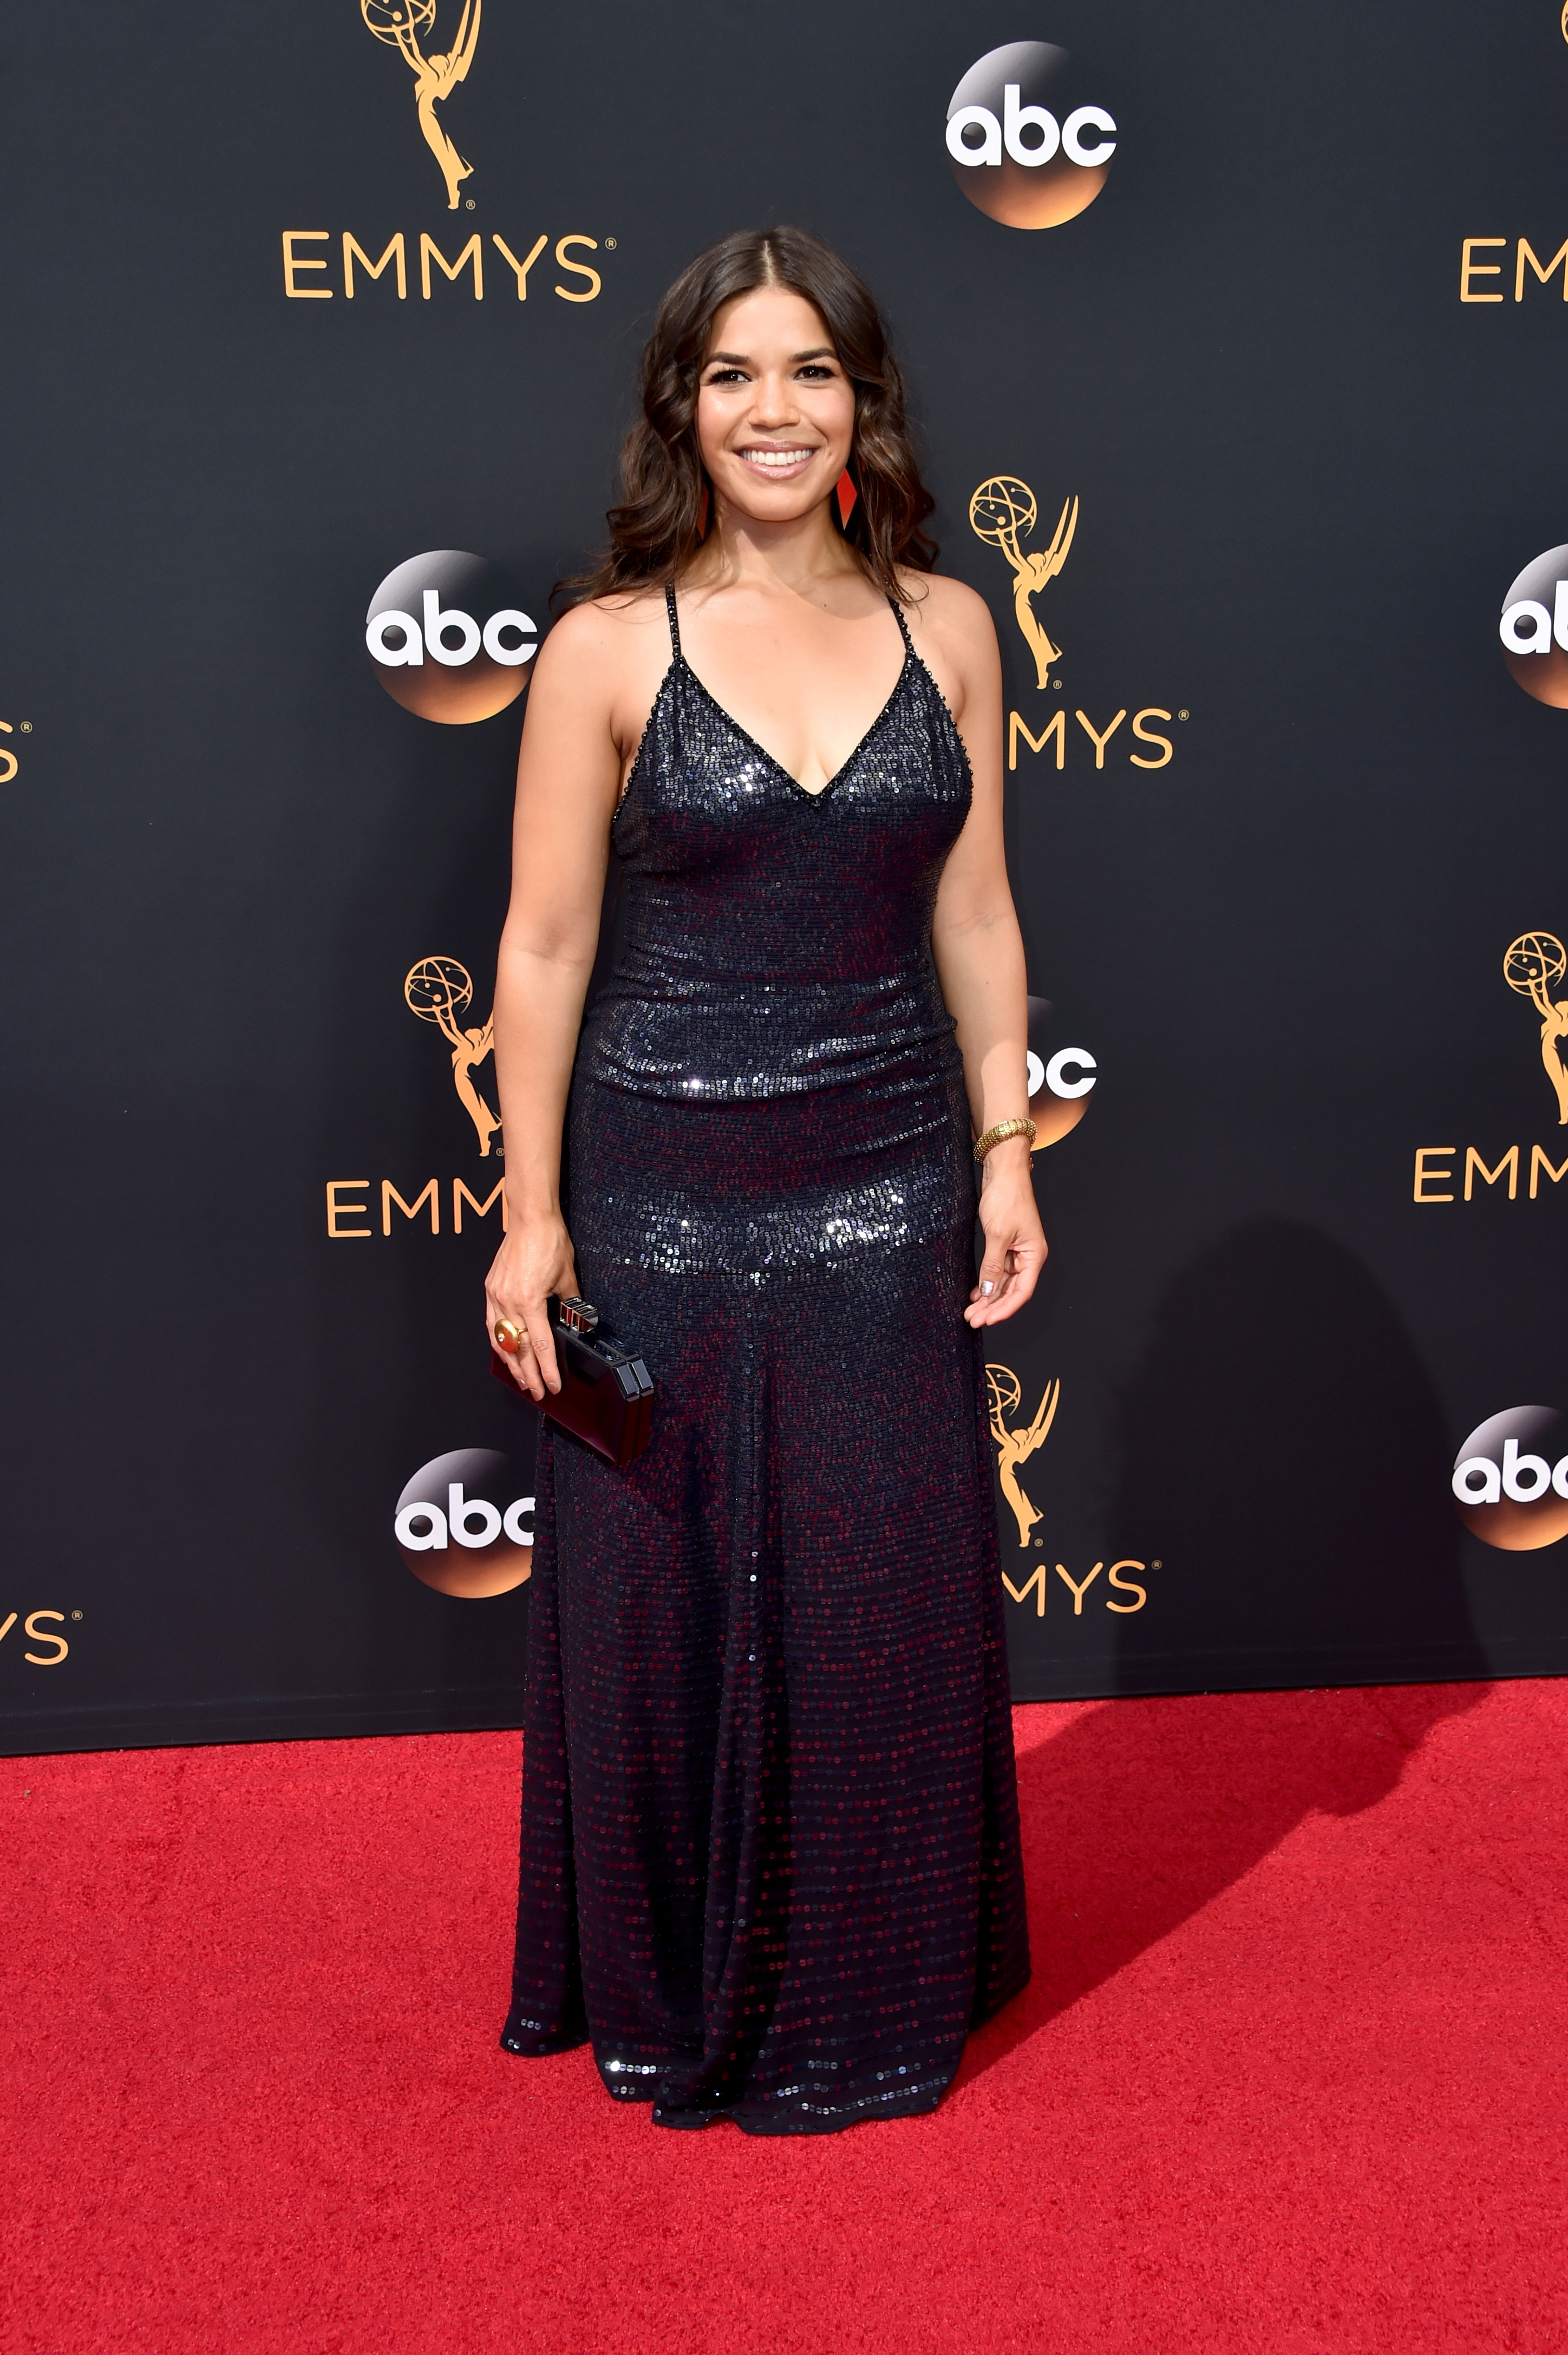 America Ferrara arrives at the 68th Annual Primetime Emmy Awards at Microsoft Theater on Sept. 18, 2016 in Los Angeles.